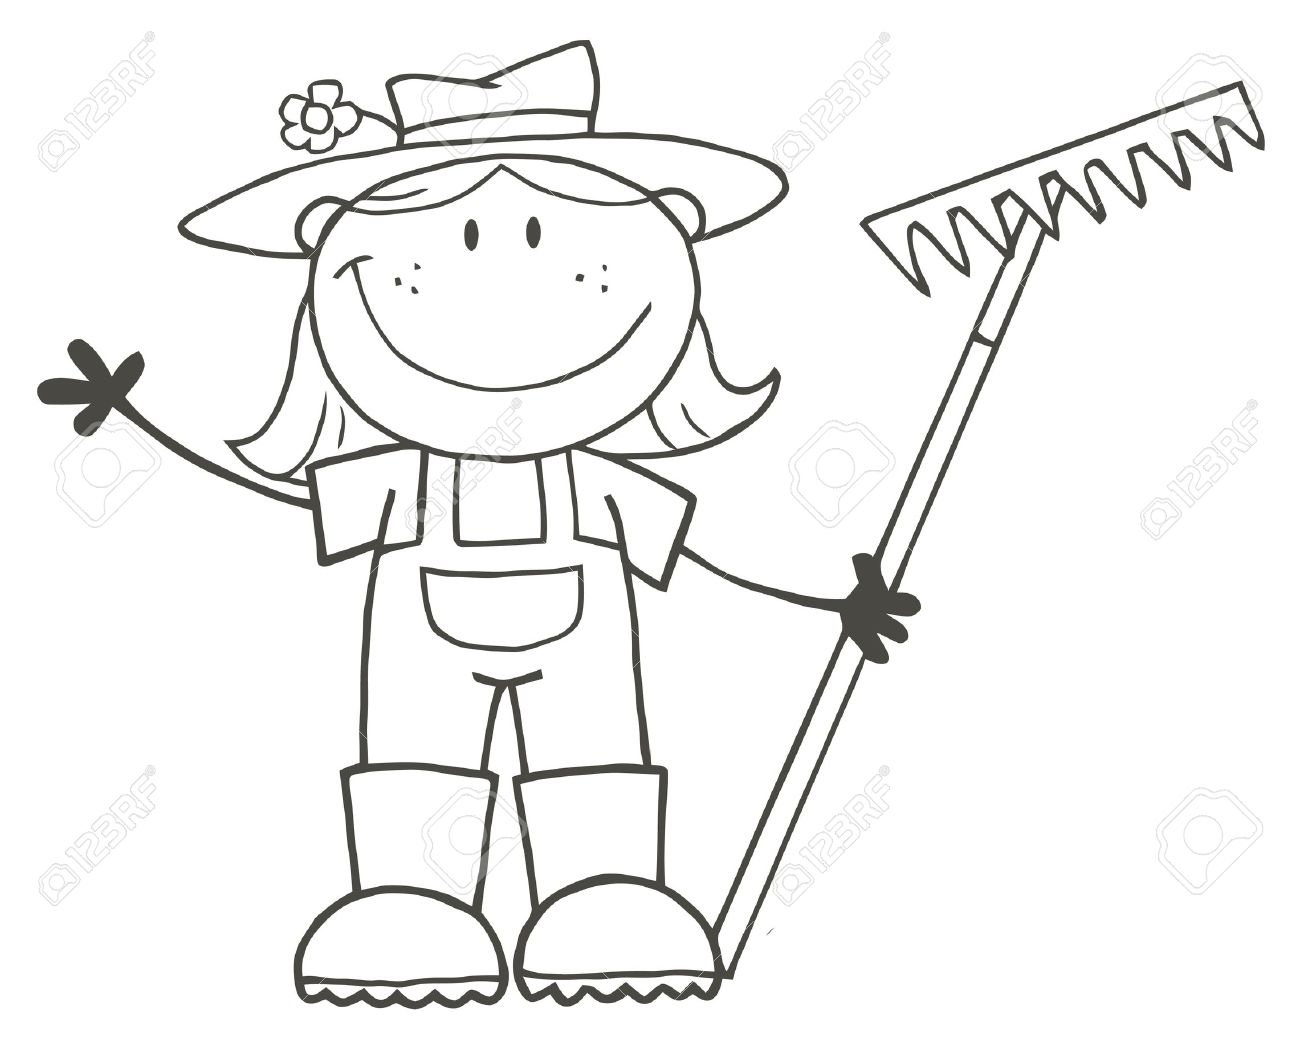 Farmers clipart drawing. Simple farm at getdrawings